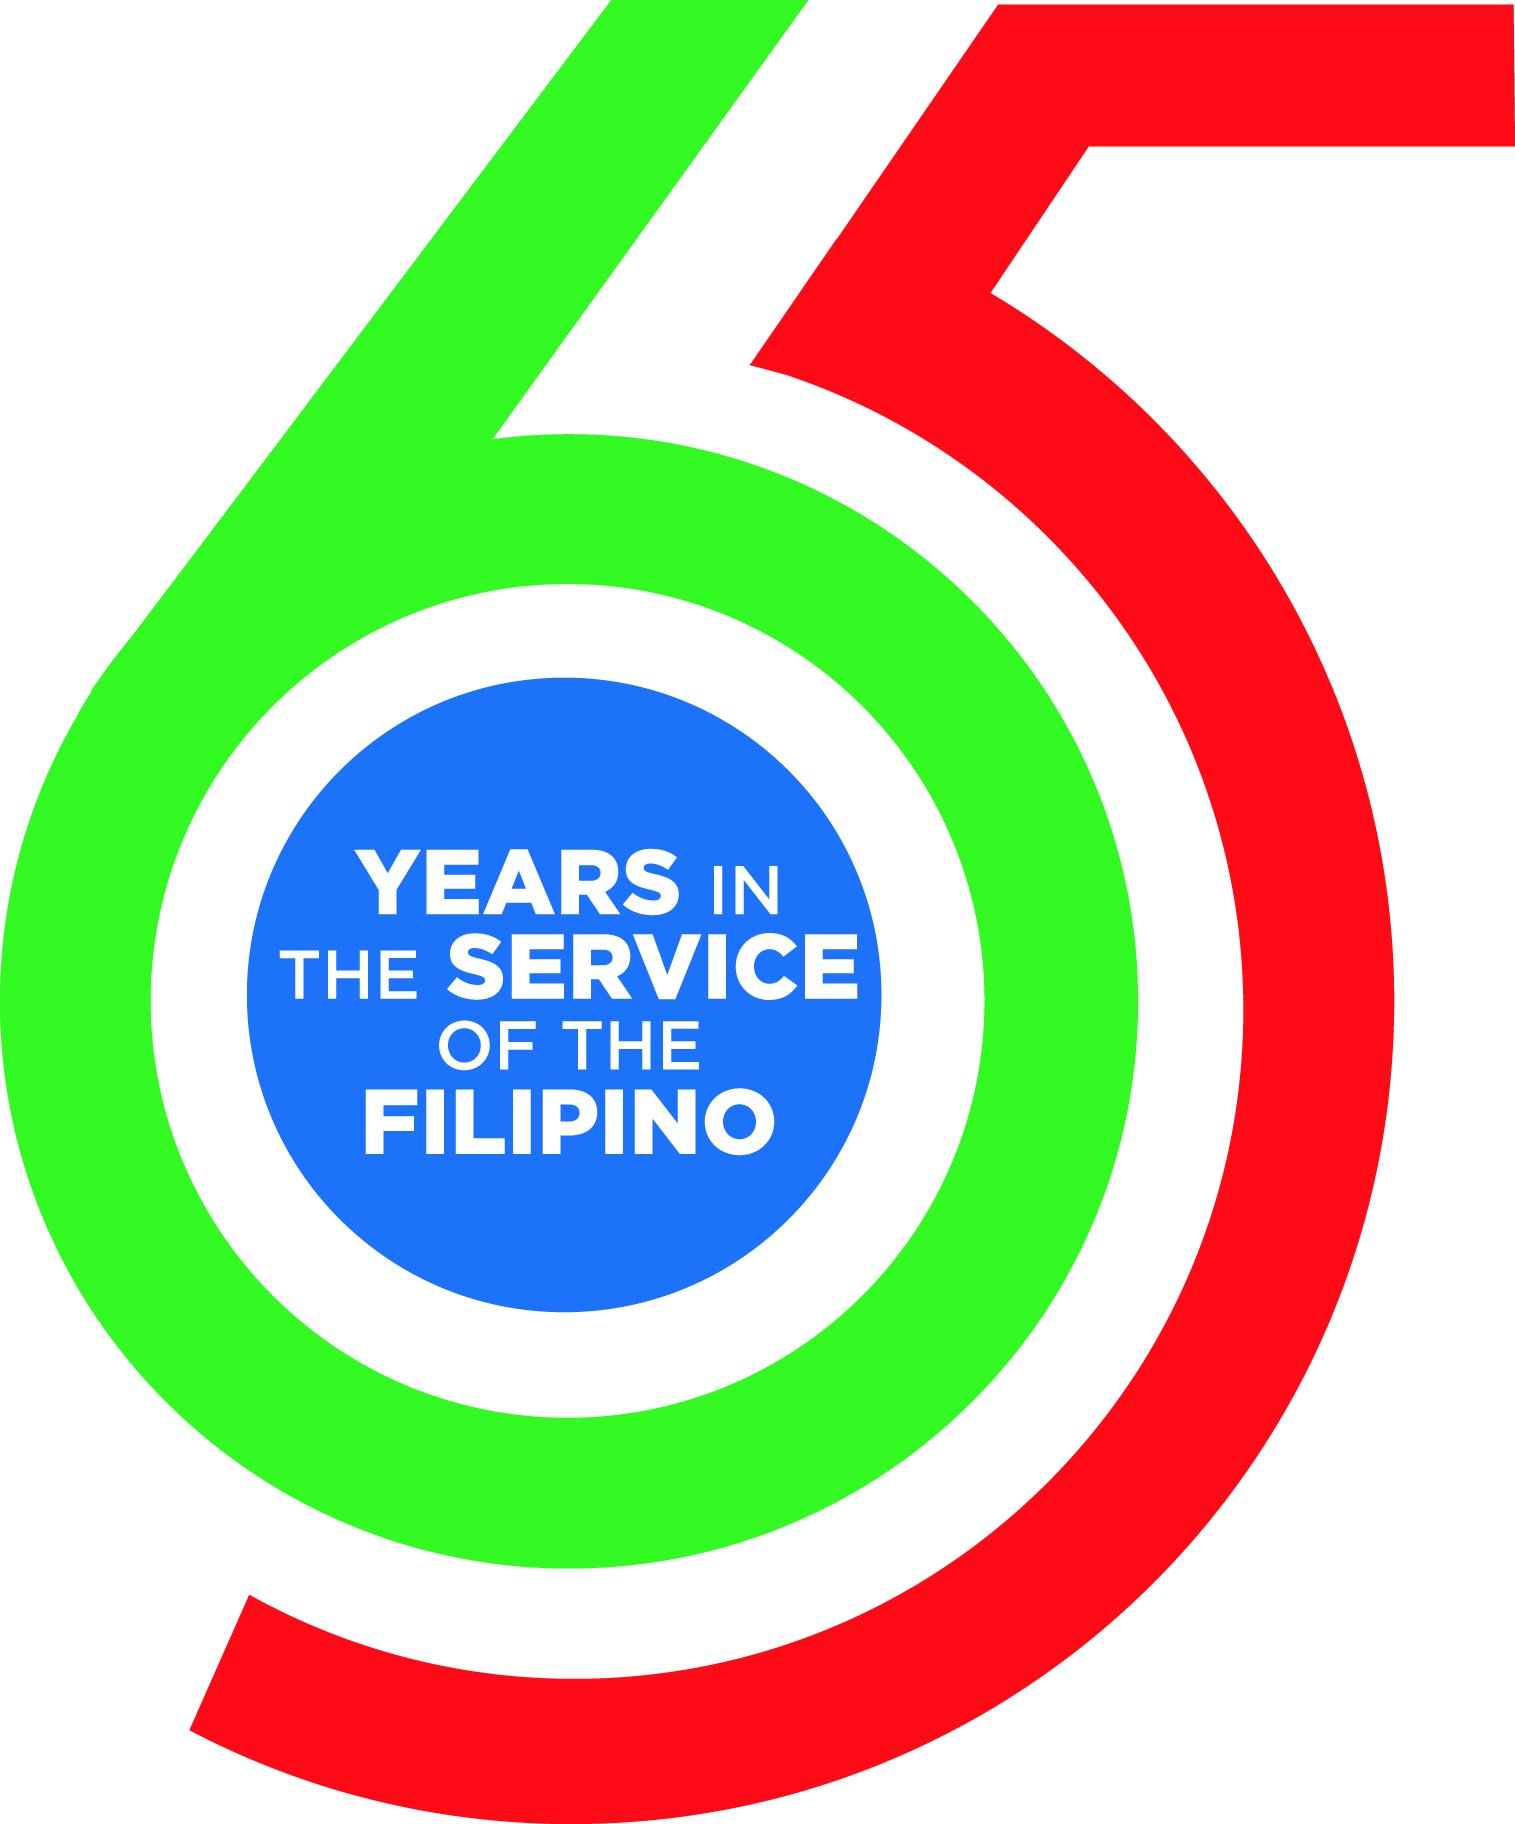 ABS-CBN celebrates 65 years in the service of the Filipino with audience tributes